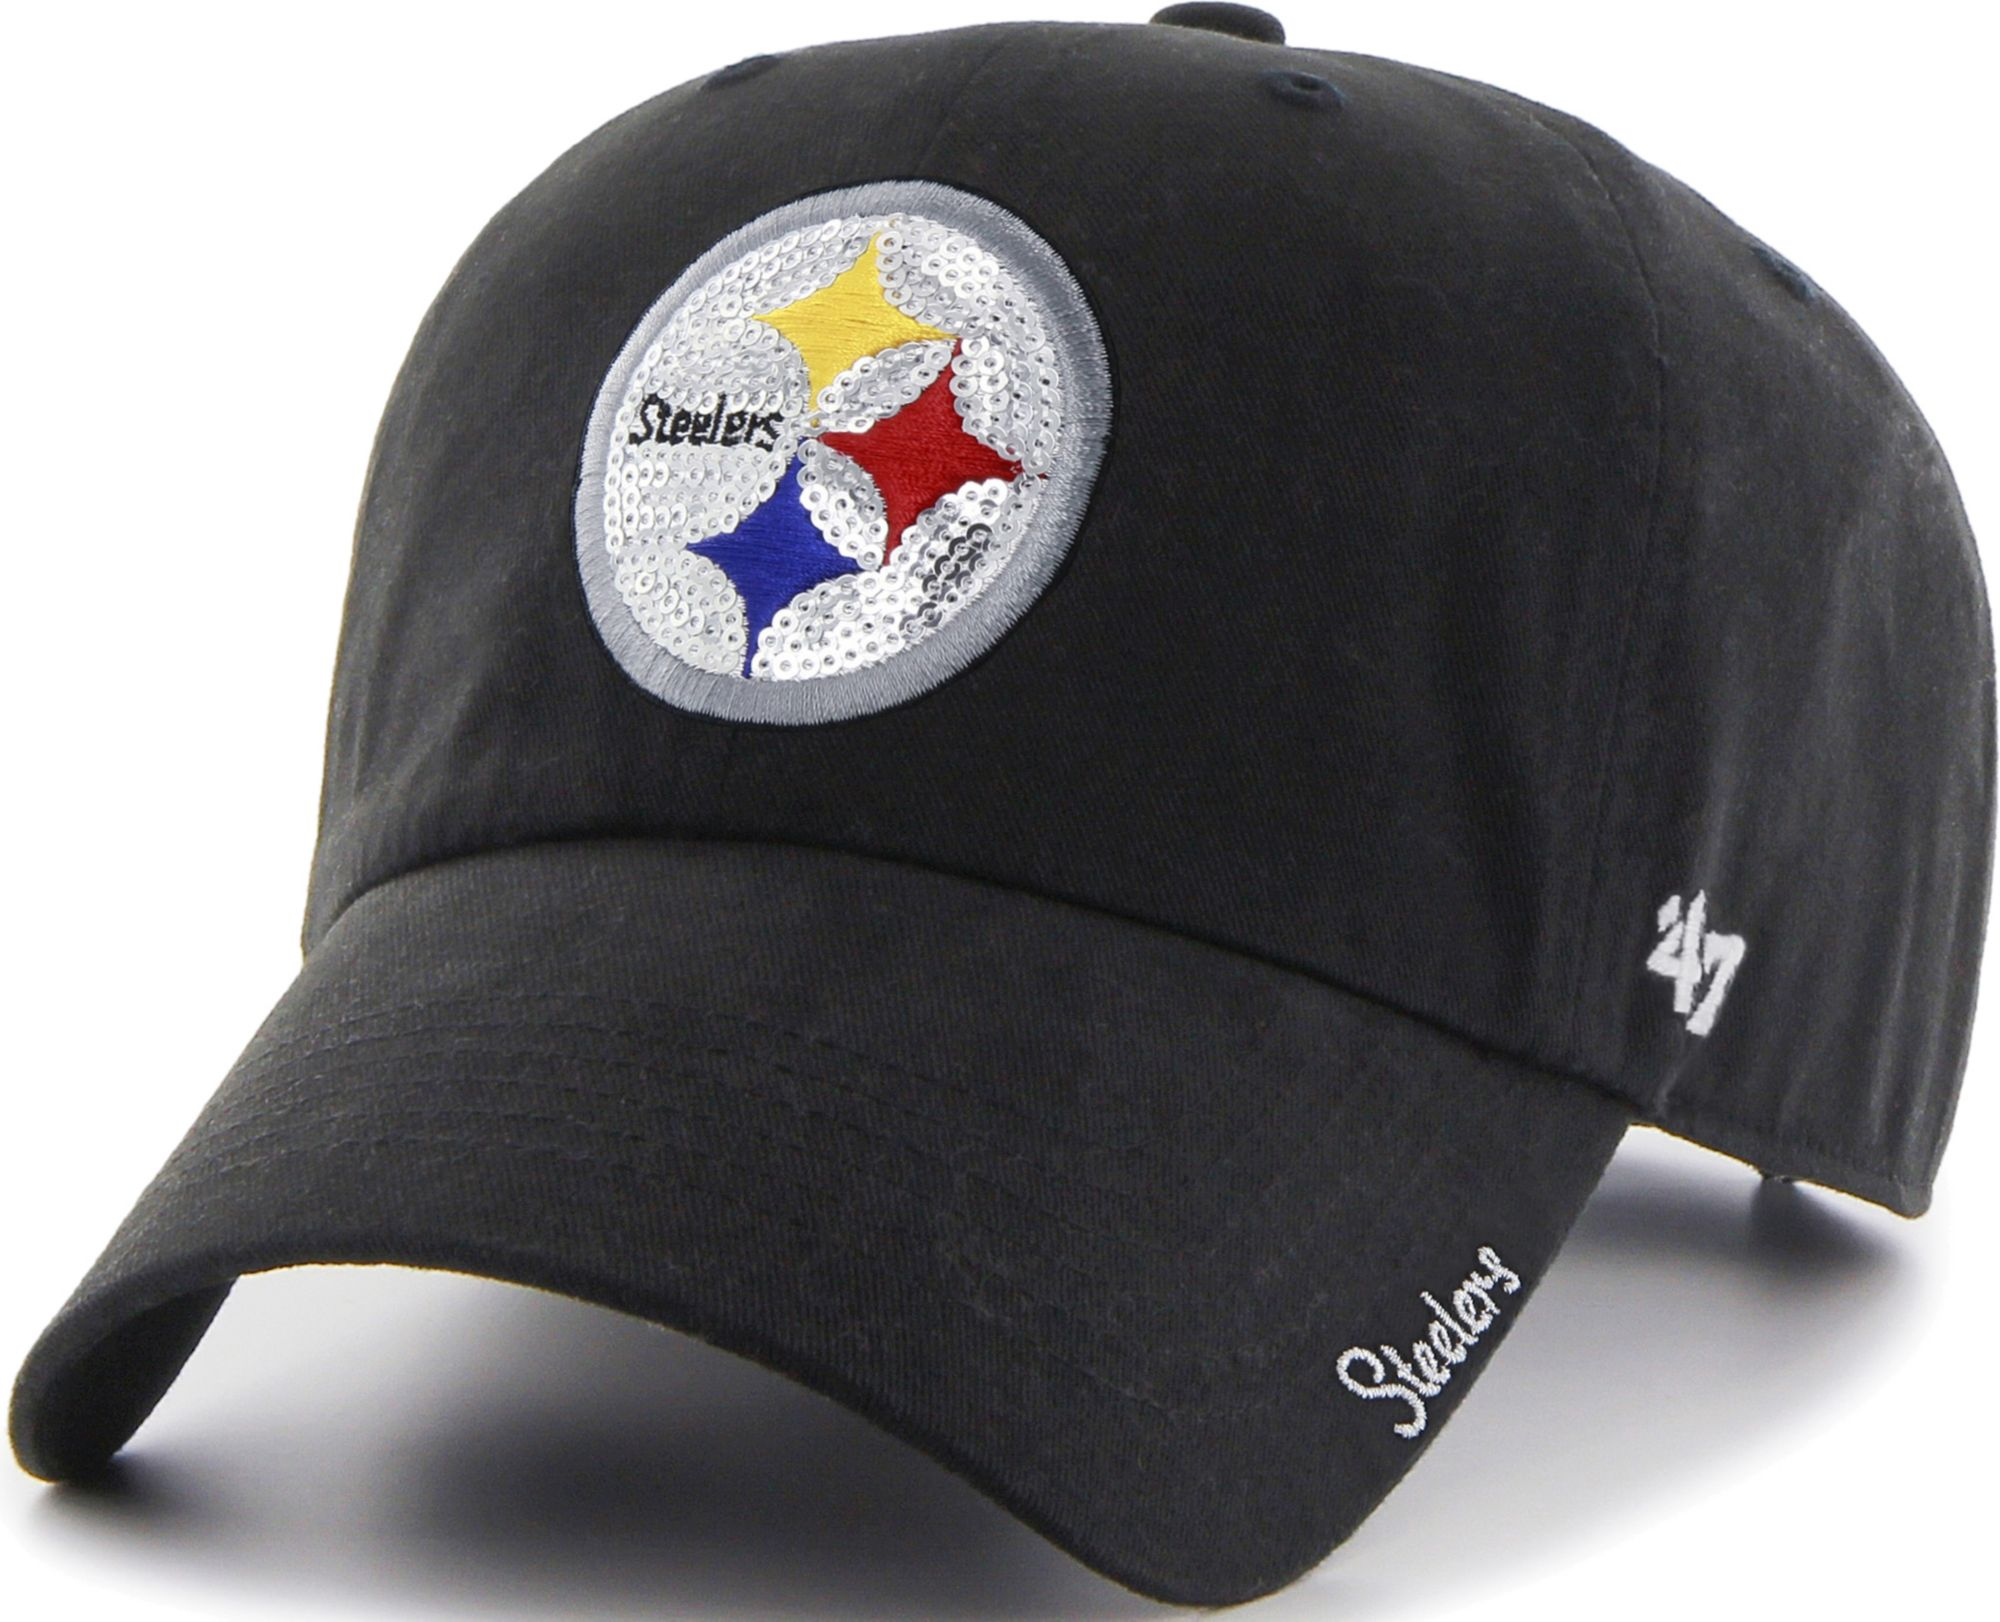 460f2a09d9d081 47 Women's Pittsburgh Steelers Sparkle Logo Black Adjustable Hat ...